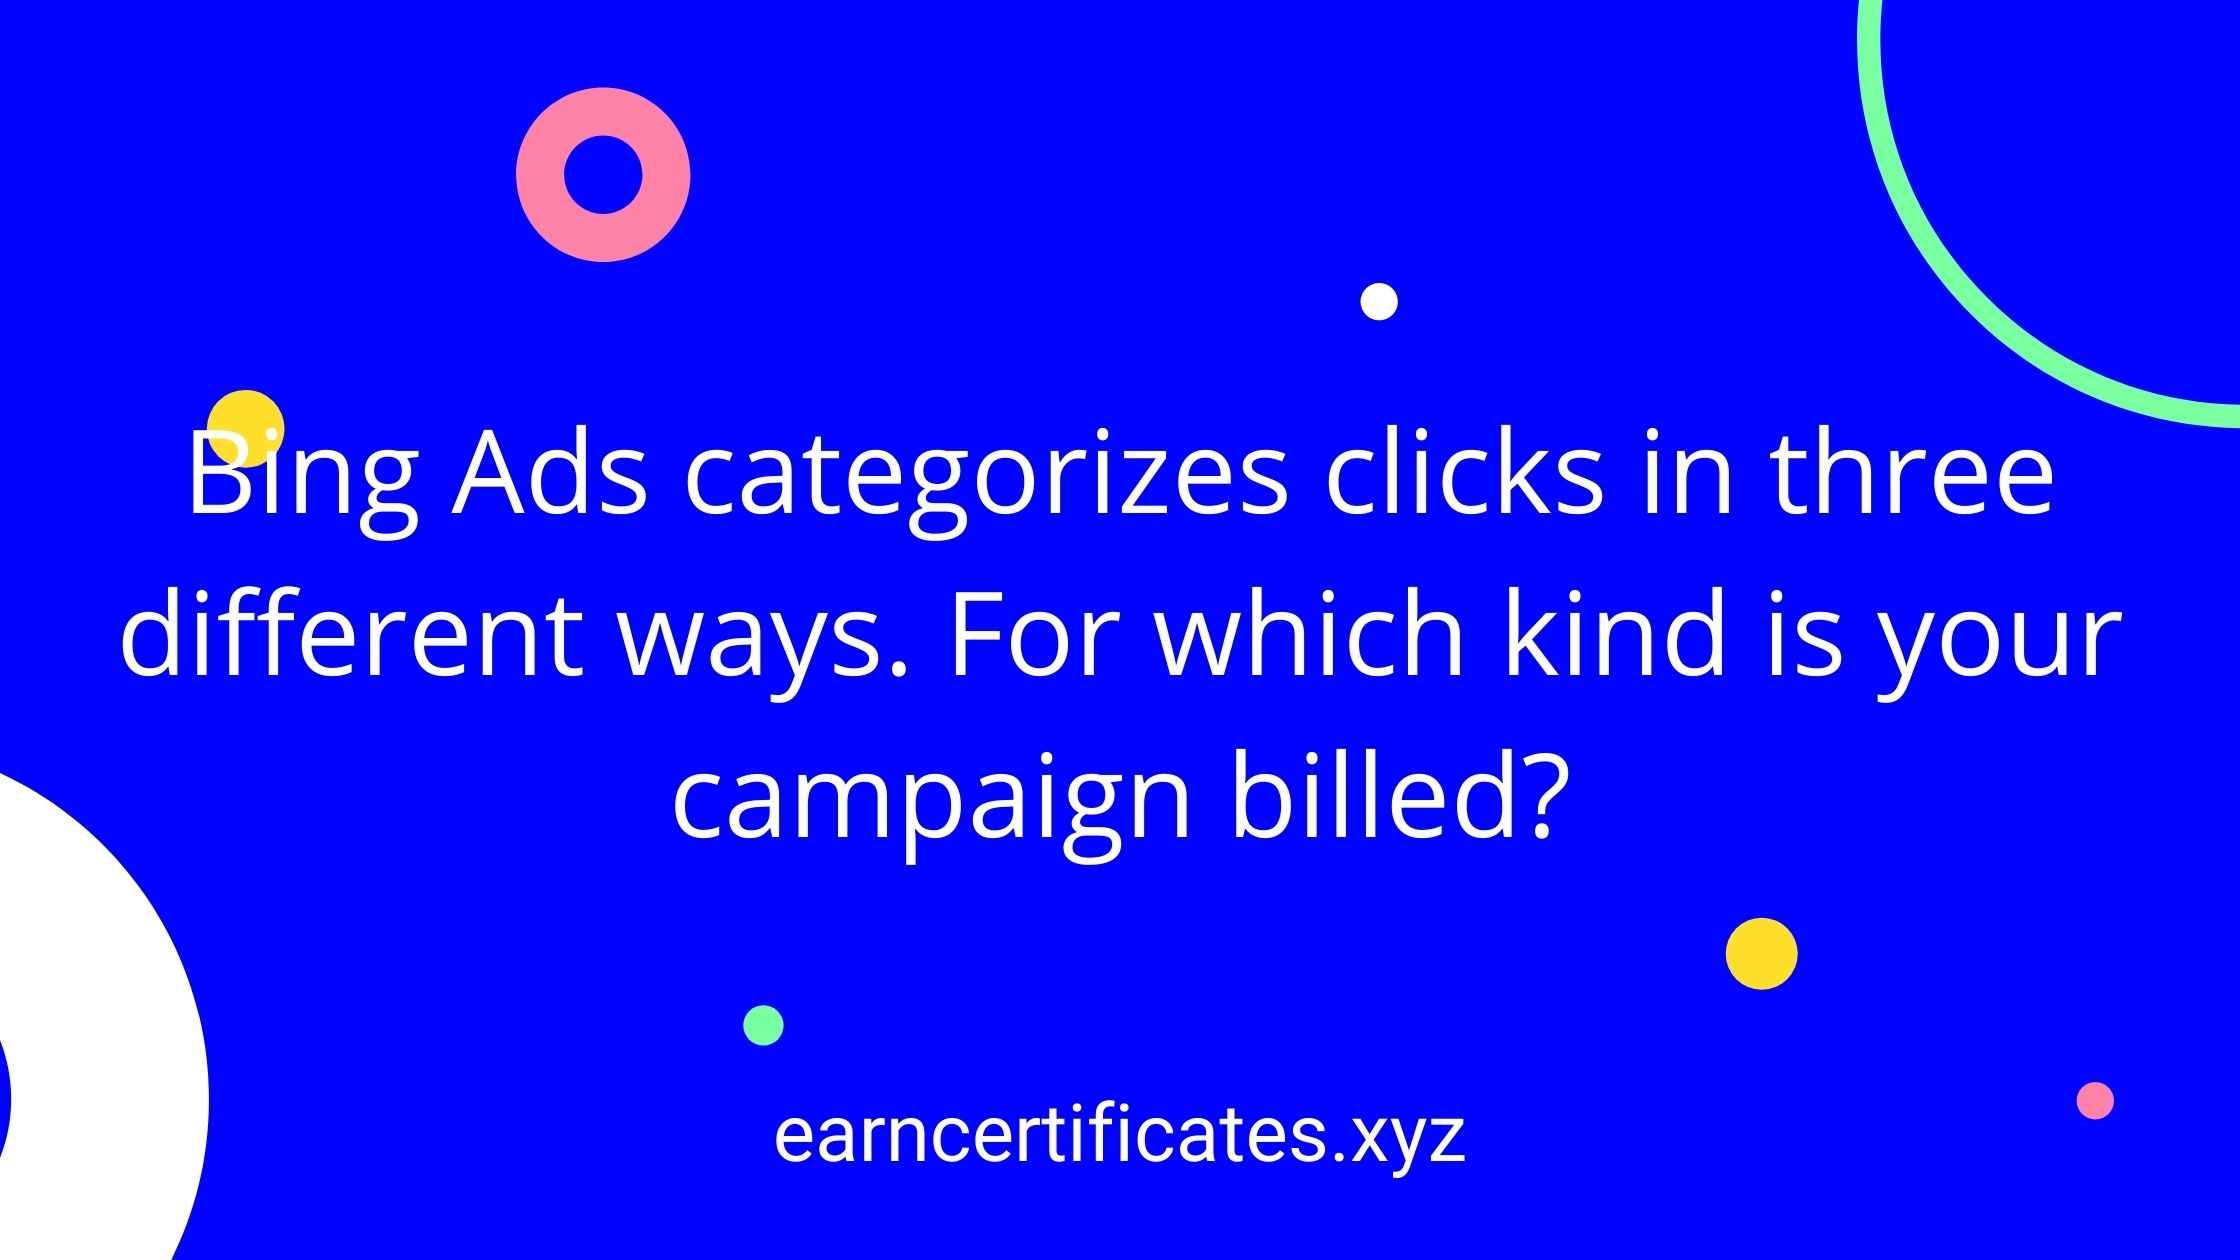 Bing Ads categorizes clicks in three different ways. For which kind is your campaign billed?